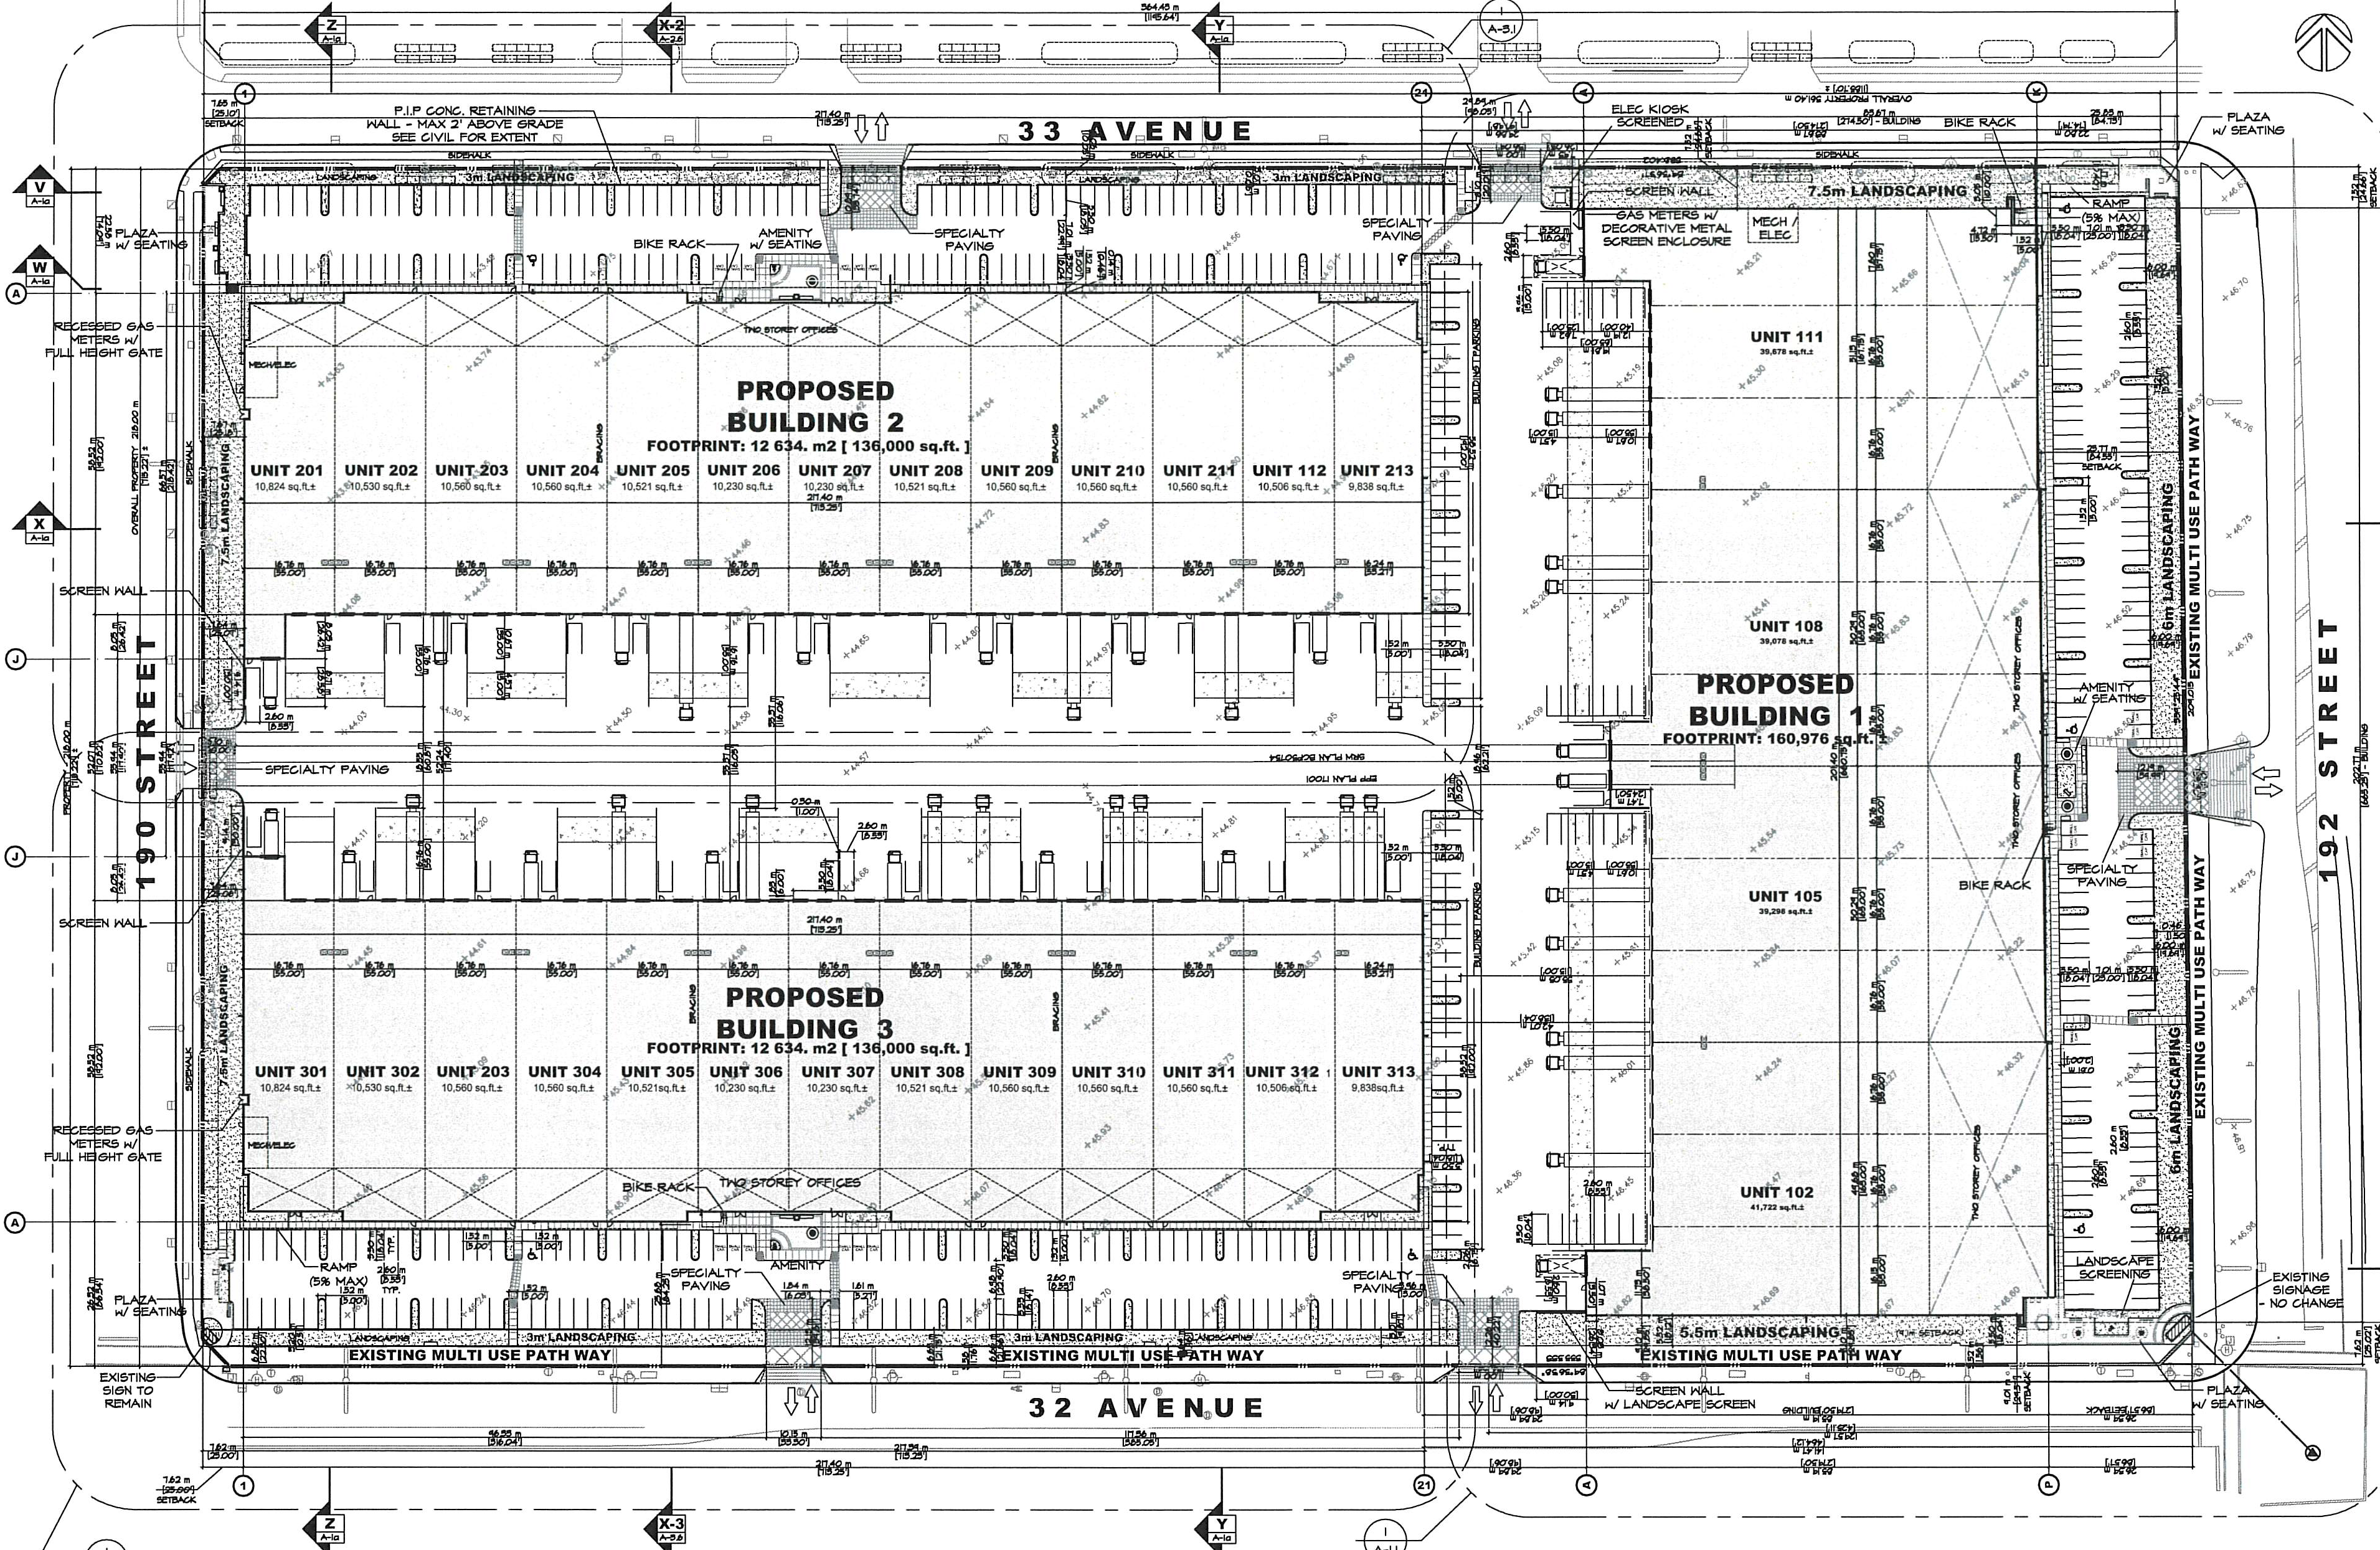 192 Street & 32 Avenue Lease Project  Site Plan